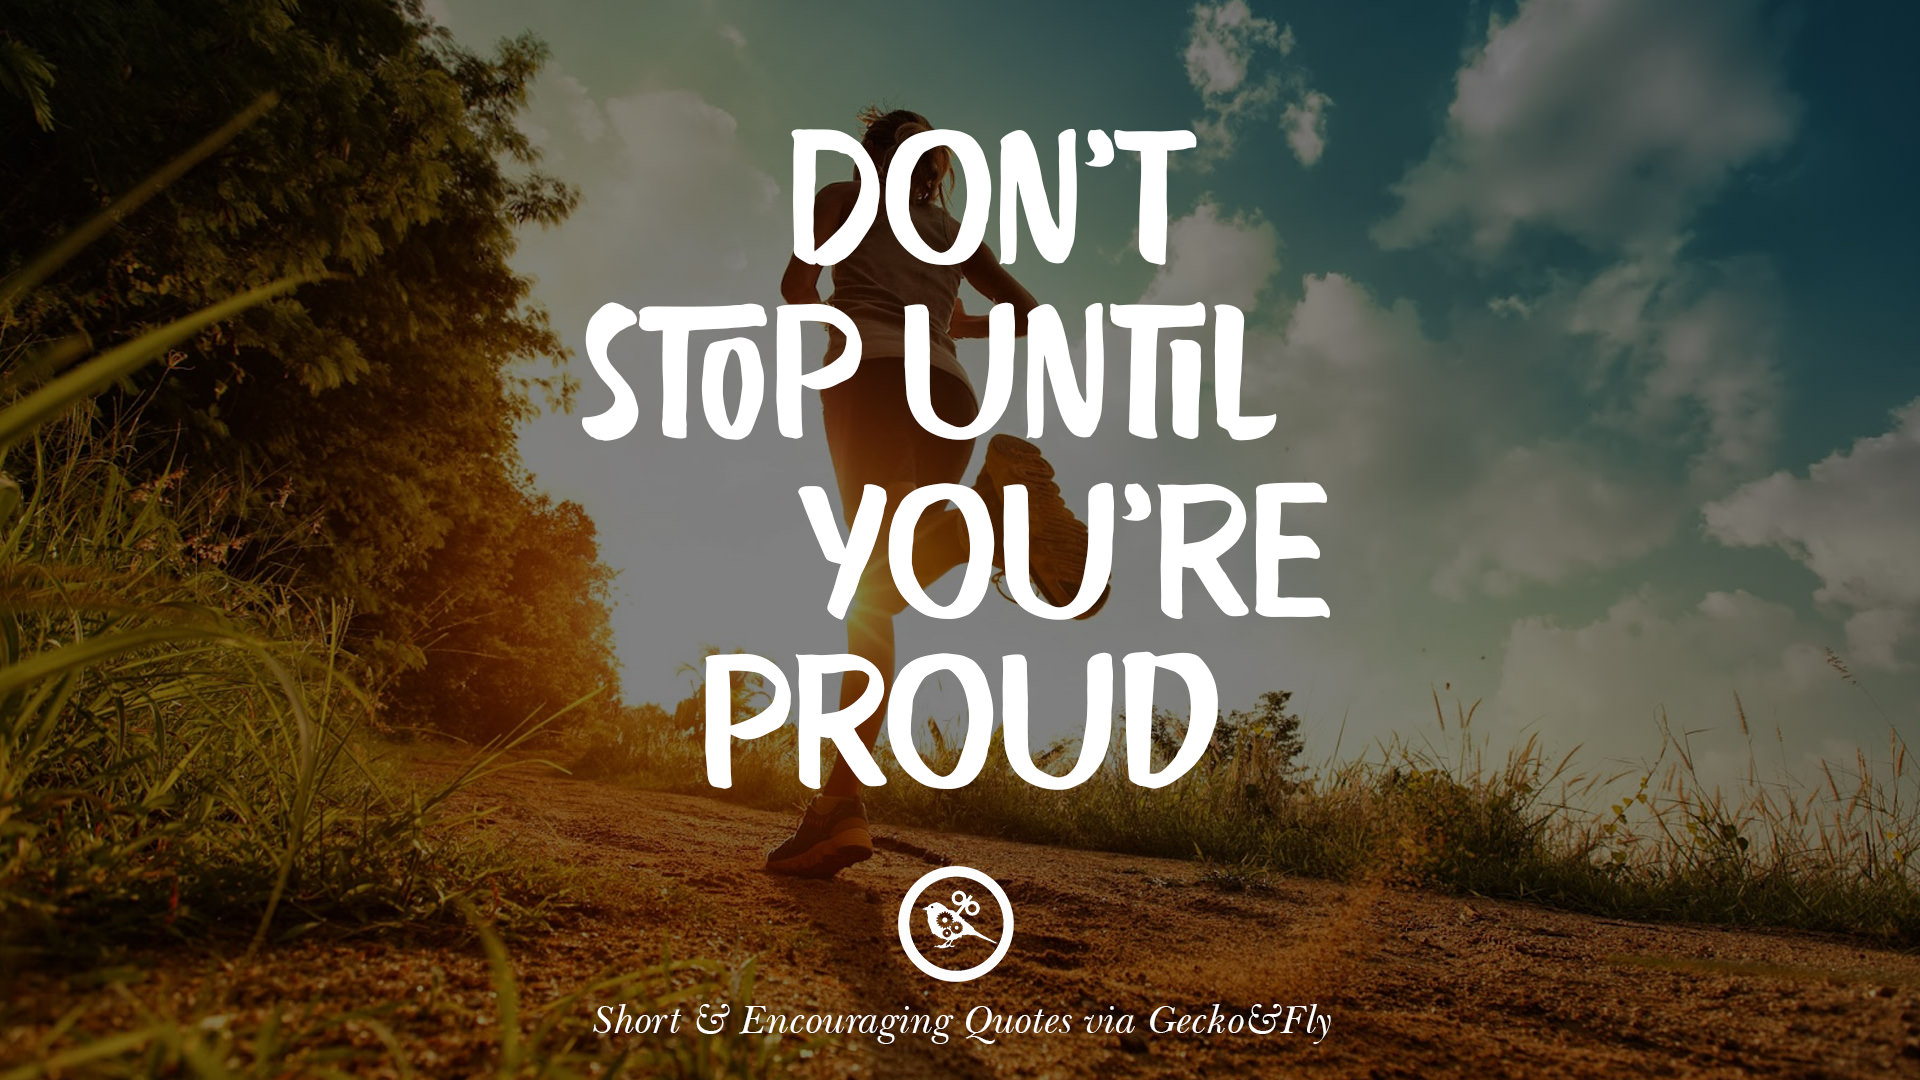 Goal Wallpapers Quotes To Stay Fit Fitness Motivation Quote Don39t Stop Until You39re Proud